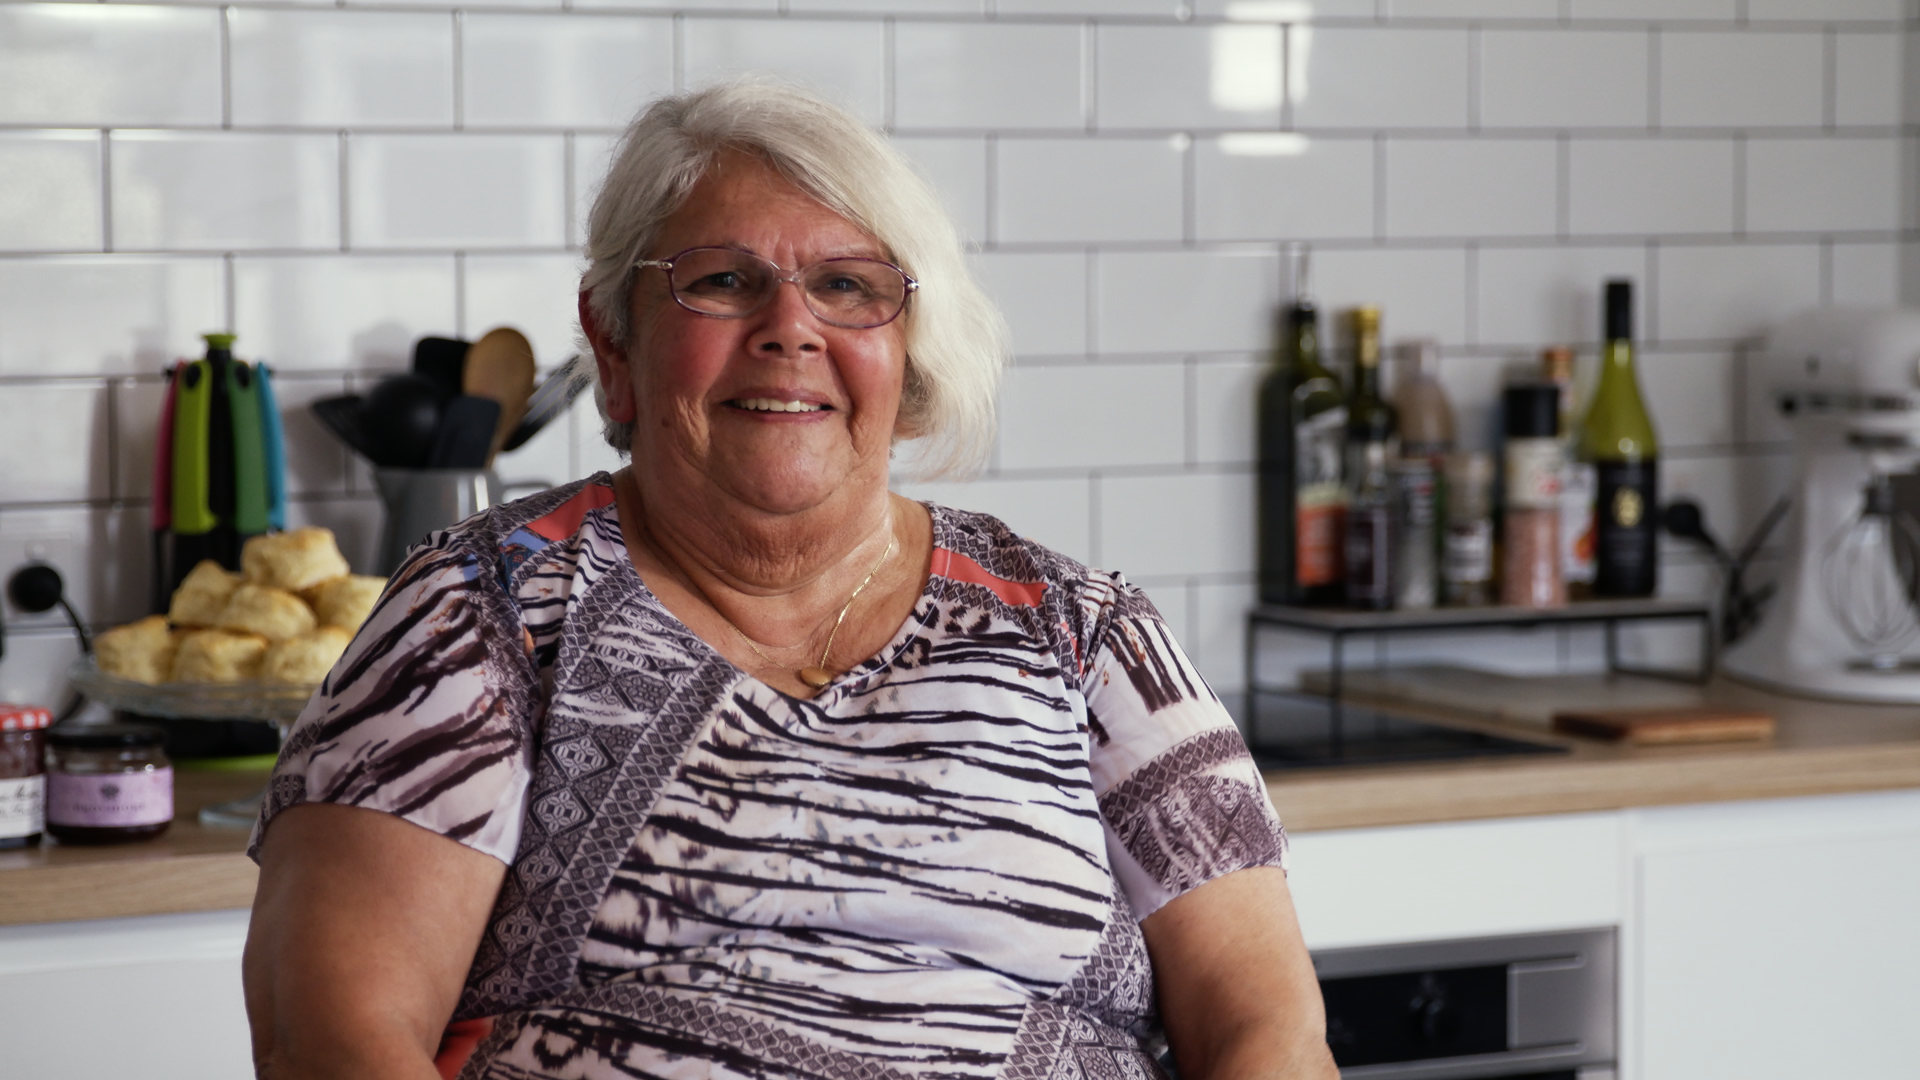 Photo of Doris Hill sitting in a kitchen with white tiles in the background